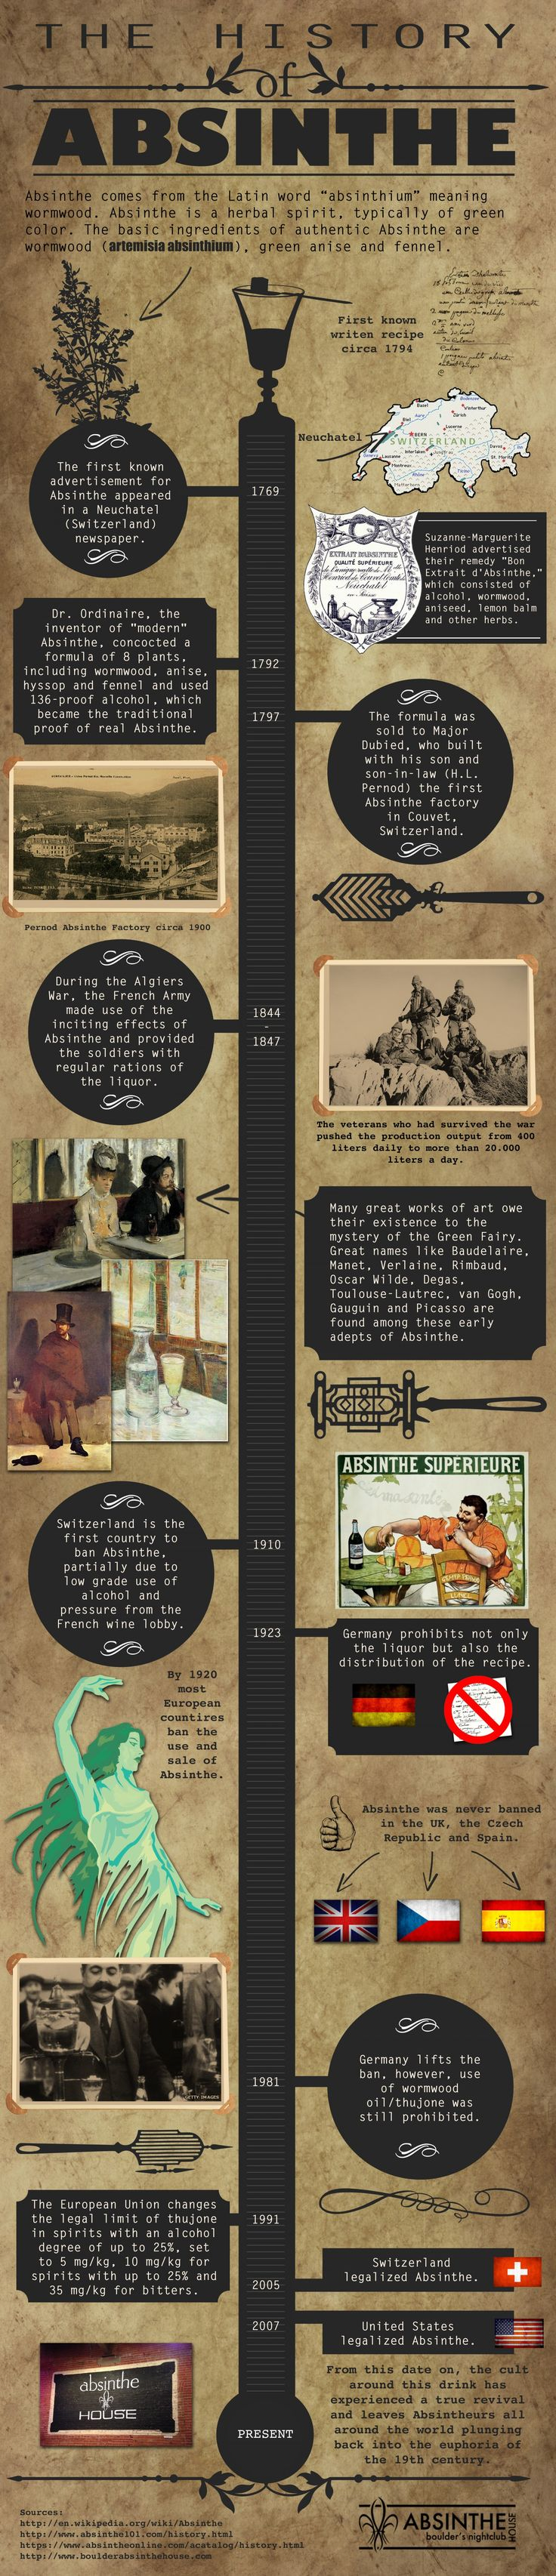 The History of Absinthe Infographic. Nice to see something like this being mostly accurate: there is a lot of misinformation elsewhere!